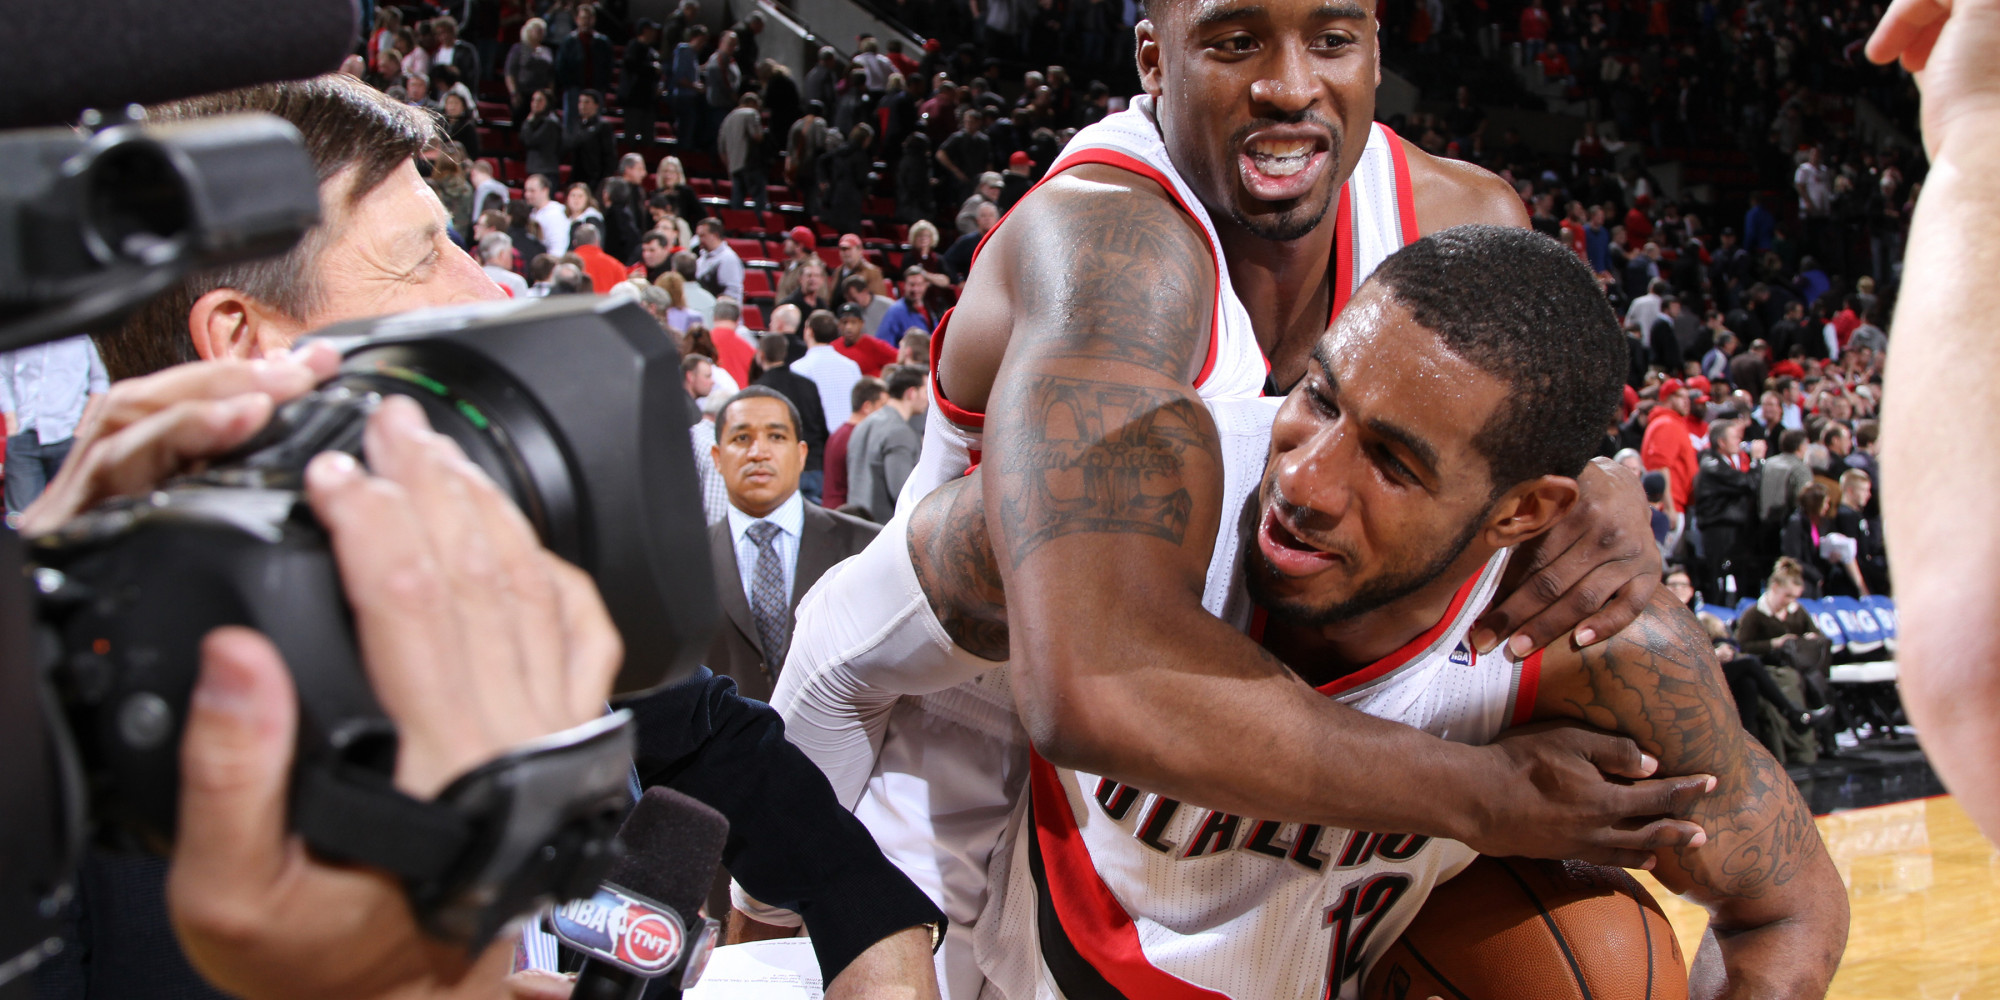 PORTLAND, OR - JANUARY 23:  LaMarcus Aldridge #12 and Wesley Matthews #2 of the Portland Trail Blazers celebrate after the game against the Denver Nuggets on January 23, 2014 at the Moda Center Arena in Portland, Oregon. NOTE TO USER: User expressly acknowledges and agrees that, by downloading and or using this photograph, user is consenting to the terms and conditions of the Getty Images License Agreement. Mandatory Copyright Notice: Copyright 2014 NBAE (Photo by Sam Forencich/NBAE via Getty Images)